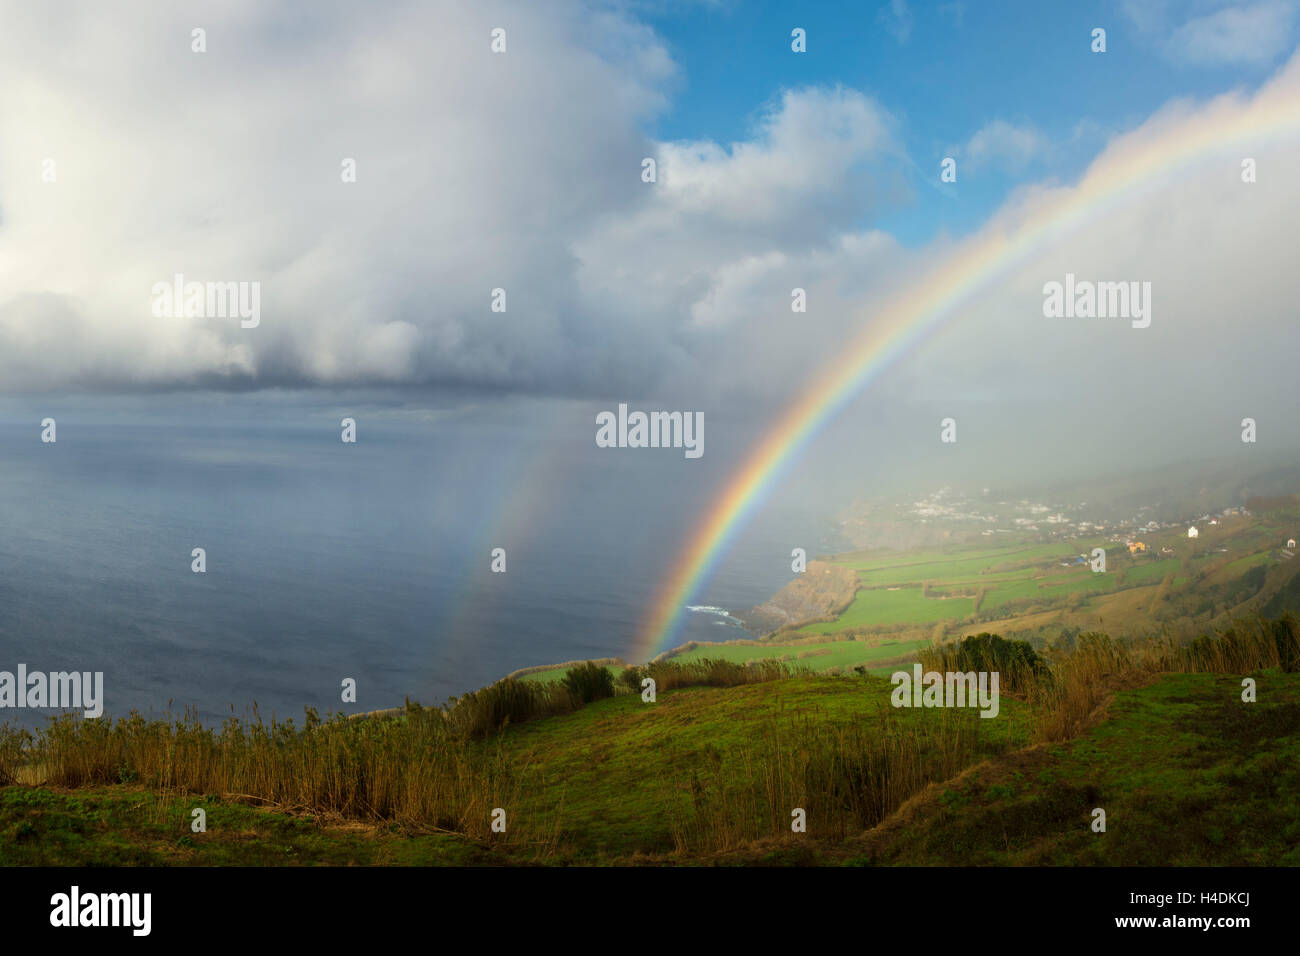 Rainbows about Feteiras, Sao Miguel, the Azores, Portugal - Stock Image